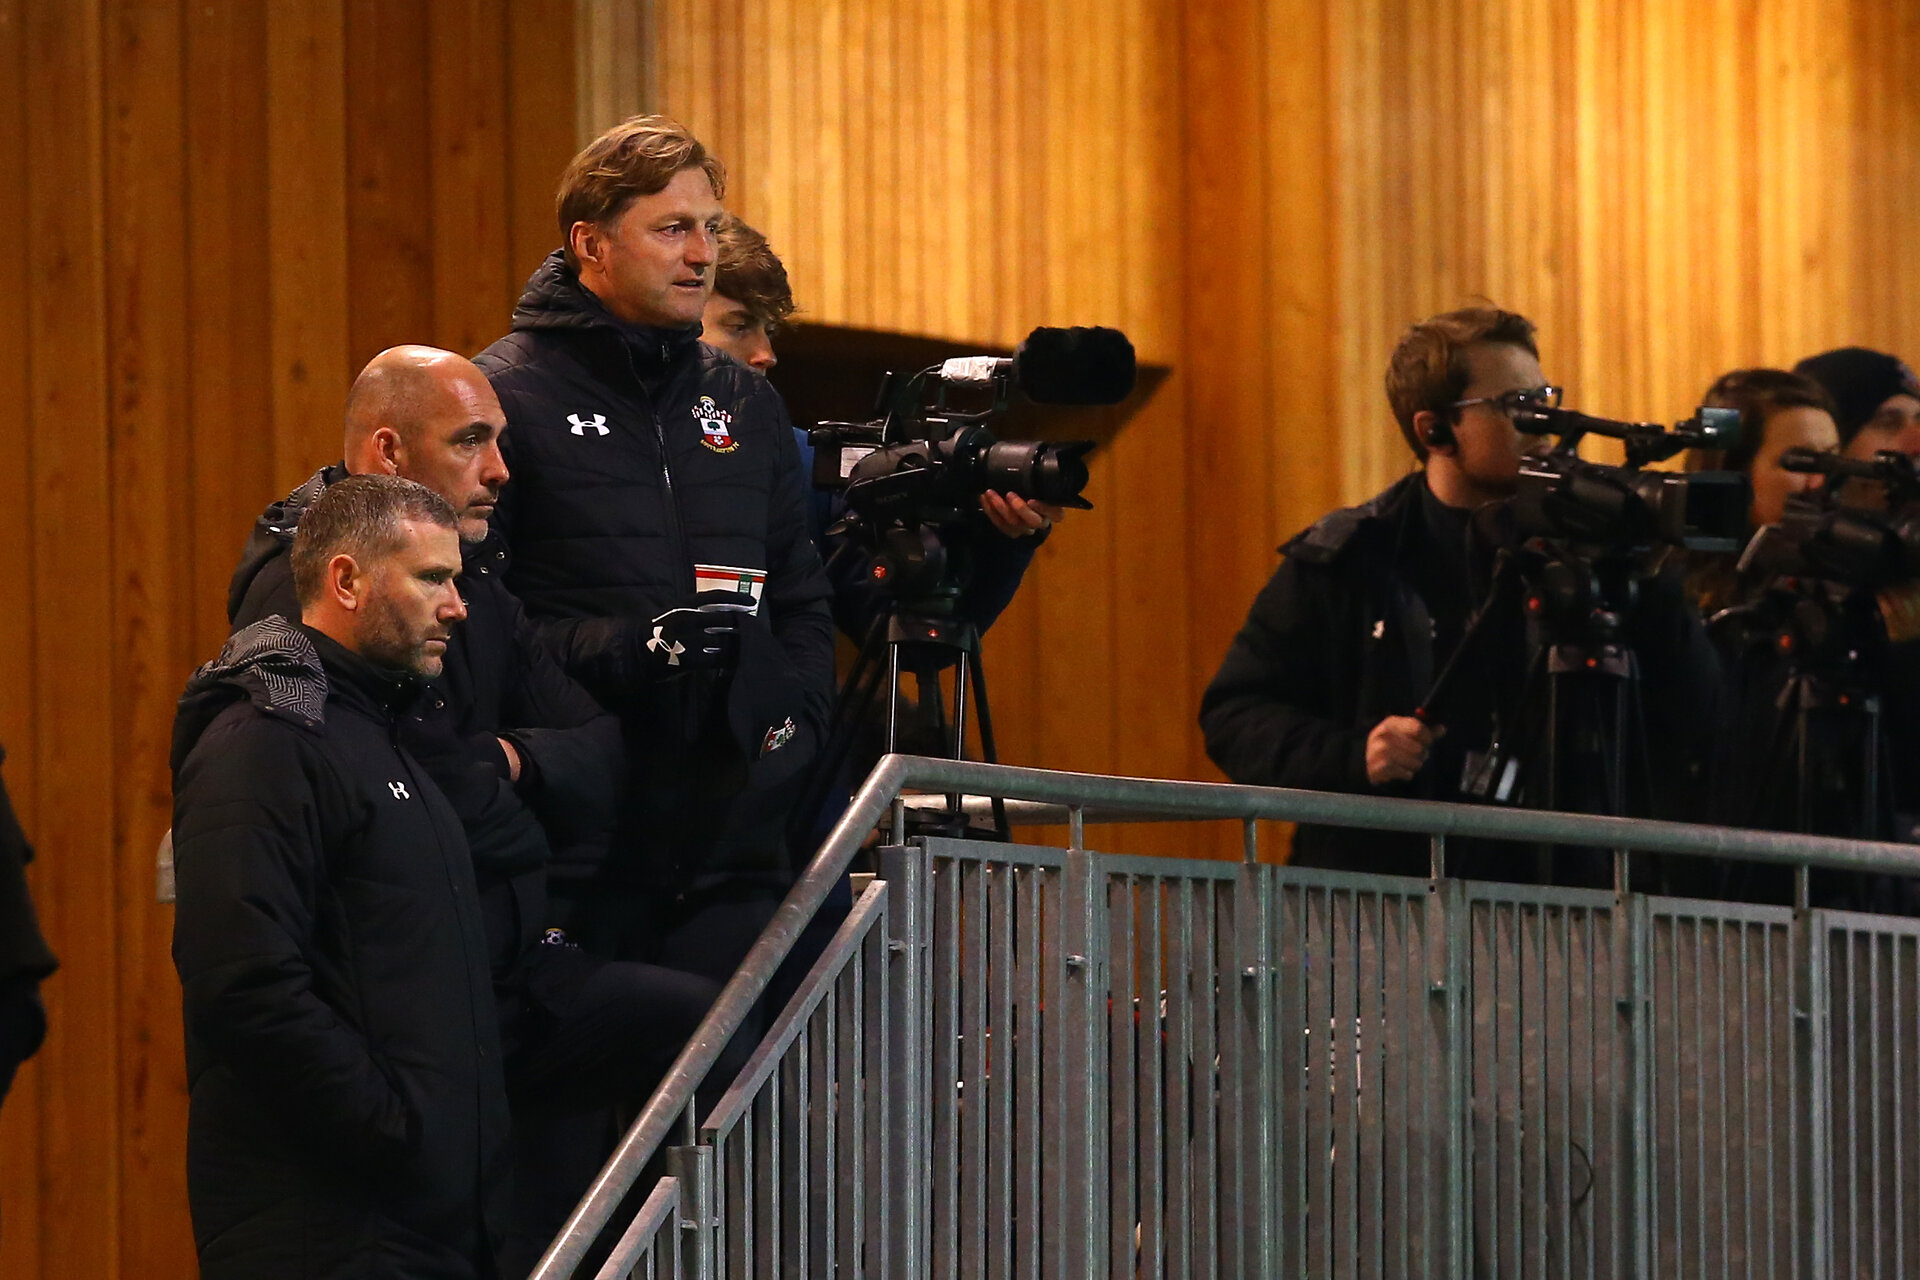 SOUTHAMPTON, ENGLAND - DECEMBER 11: during the U23s Cup match between Southampton FC and West Ham United pictured at Staplewood Training Ground on December 11, 2018 in Southampton England. (Photo by James Bridle - Southampton FC/Southampton FC via Getty Images)